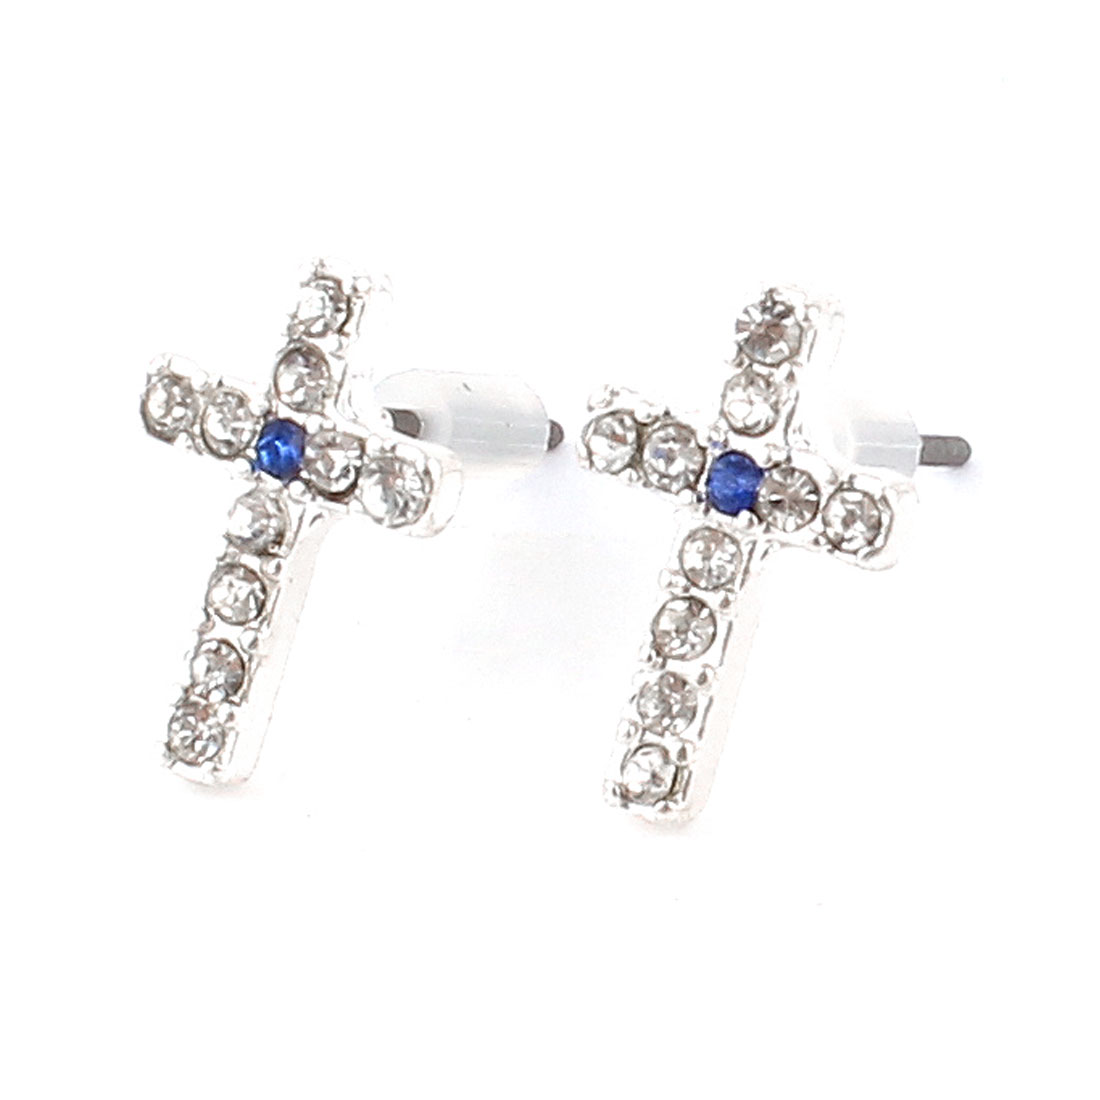 Lady Rhinestone Inlaid Royal Blue Cross Ear Pins Earbob Stud Earrings Pair